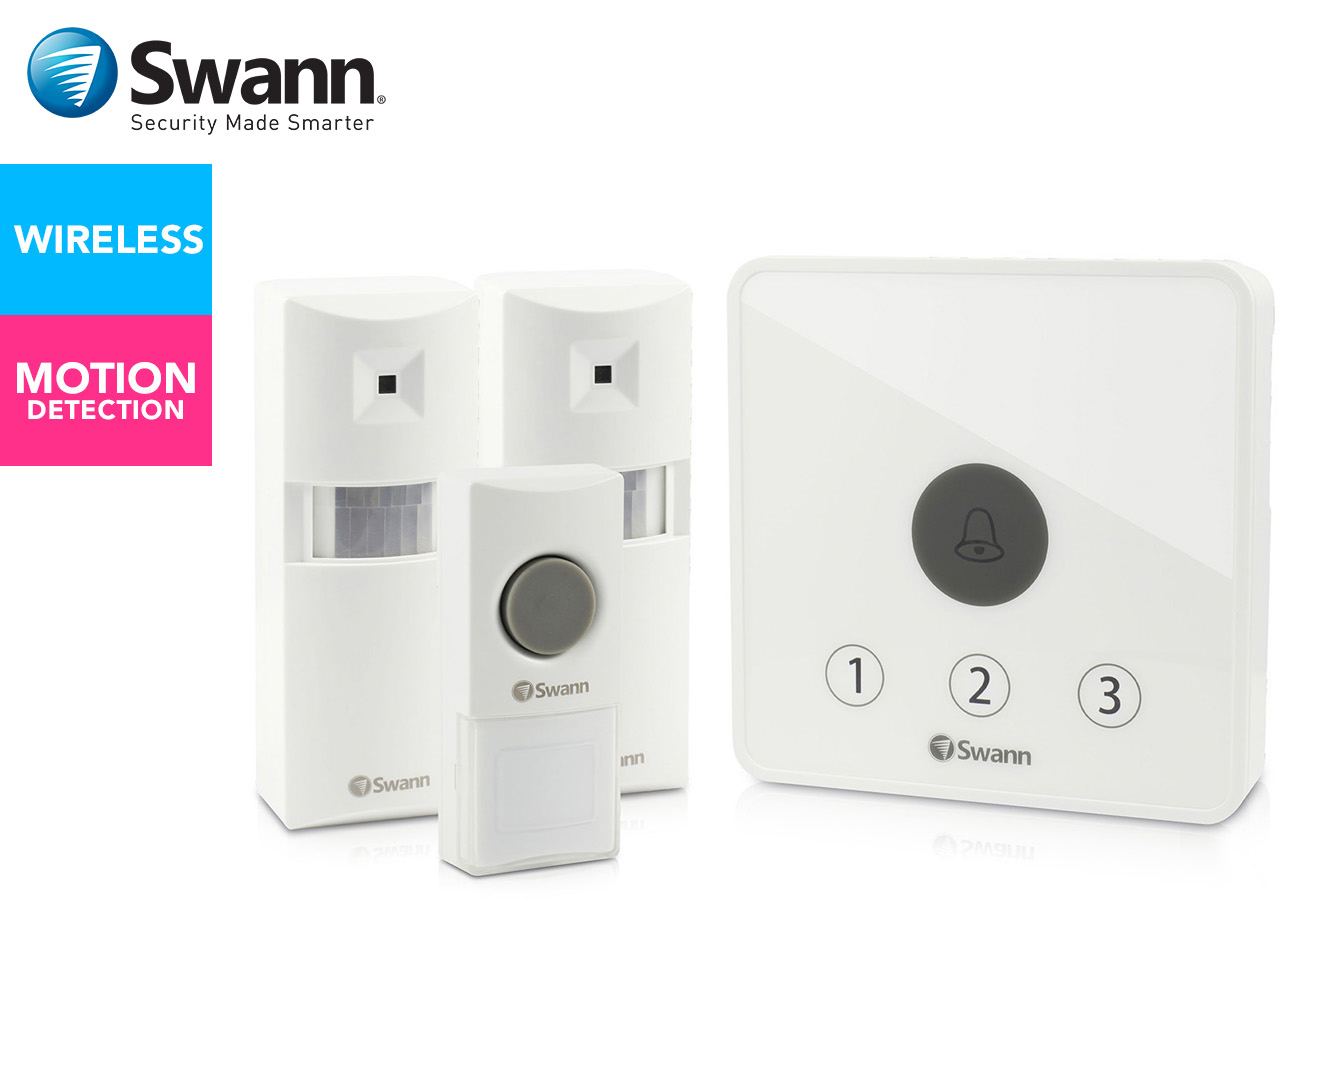 Swann Doorway Amp Entry Security System W 2 Sensors Mumgo